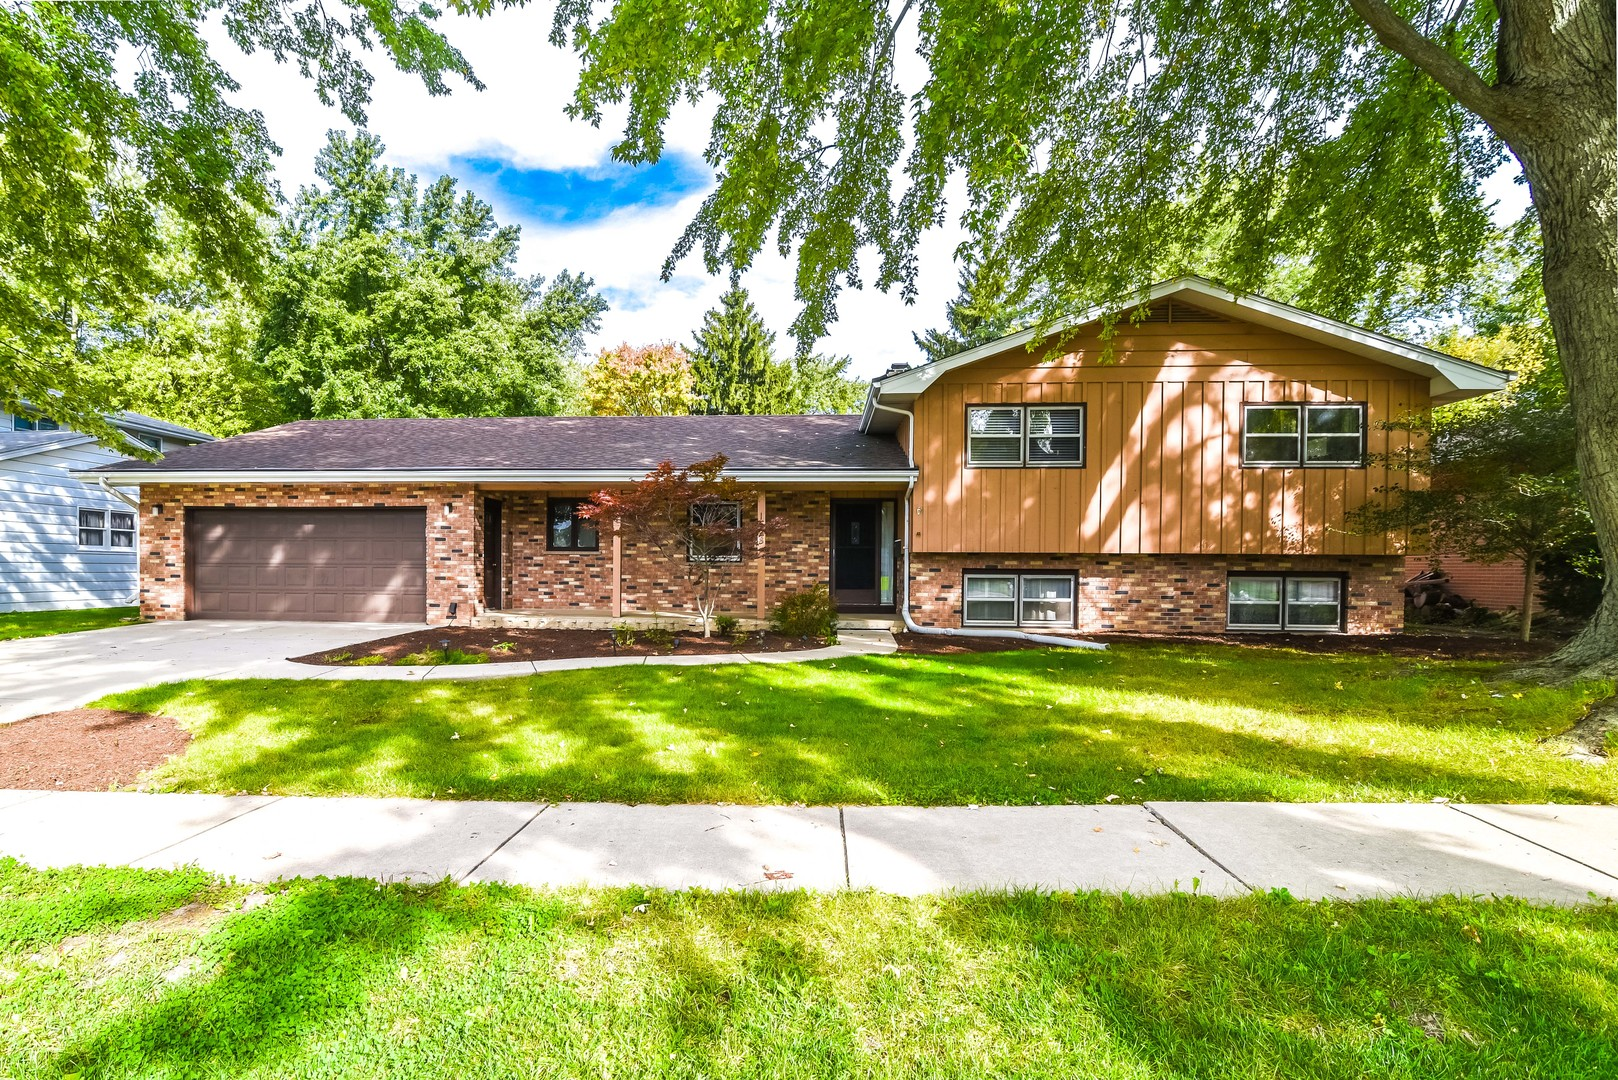 One of Elgin 4 Bedroom Homes for Sale at 1528 Maple Lane